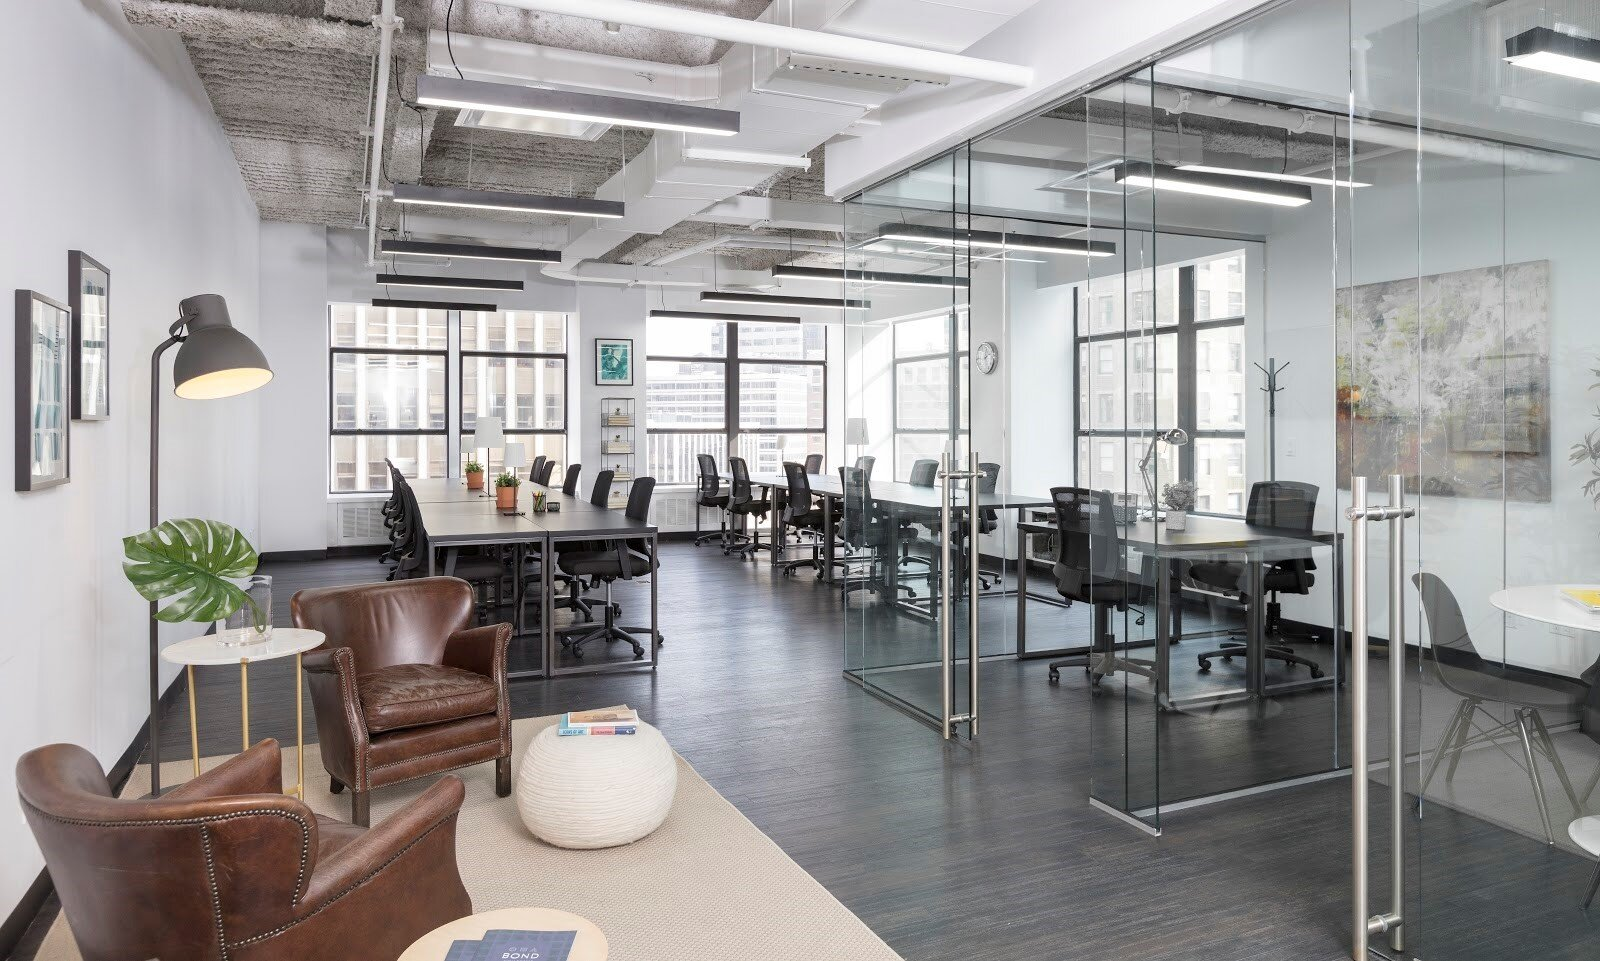 Coworking space with glass walls as example of office design